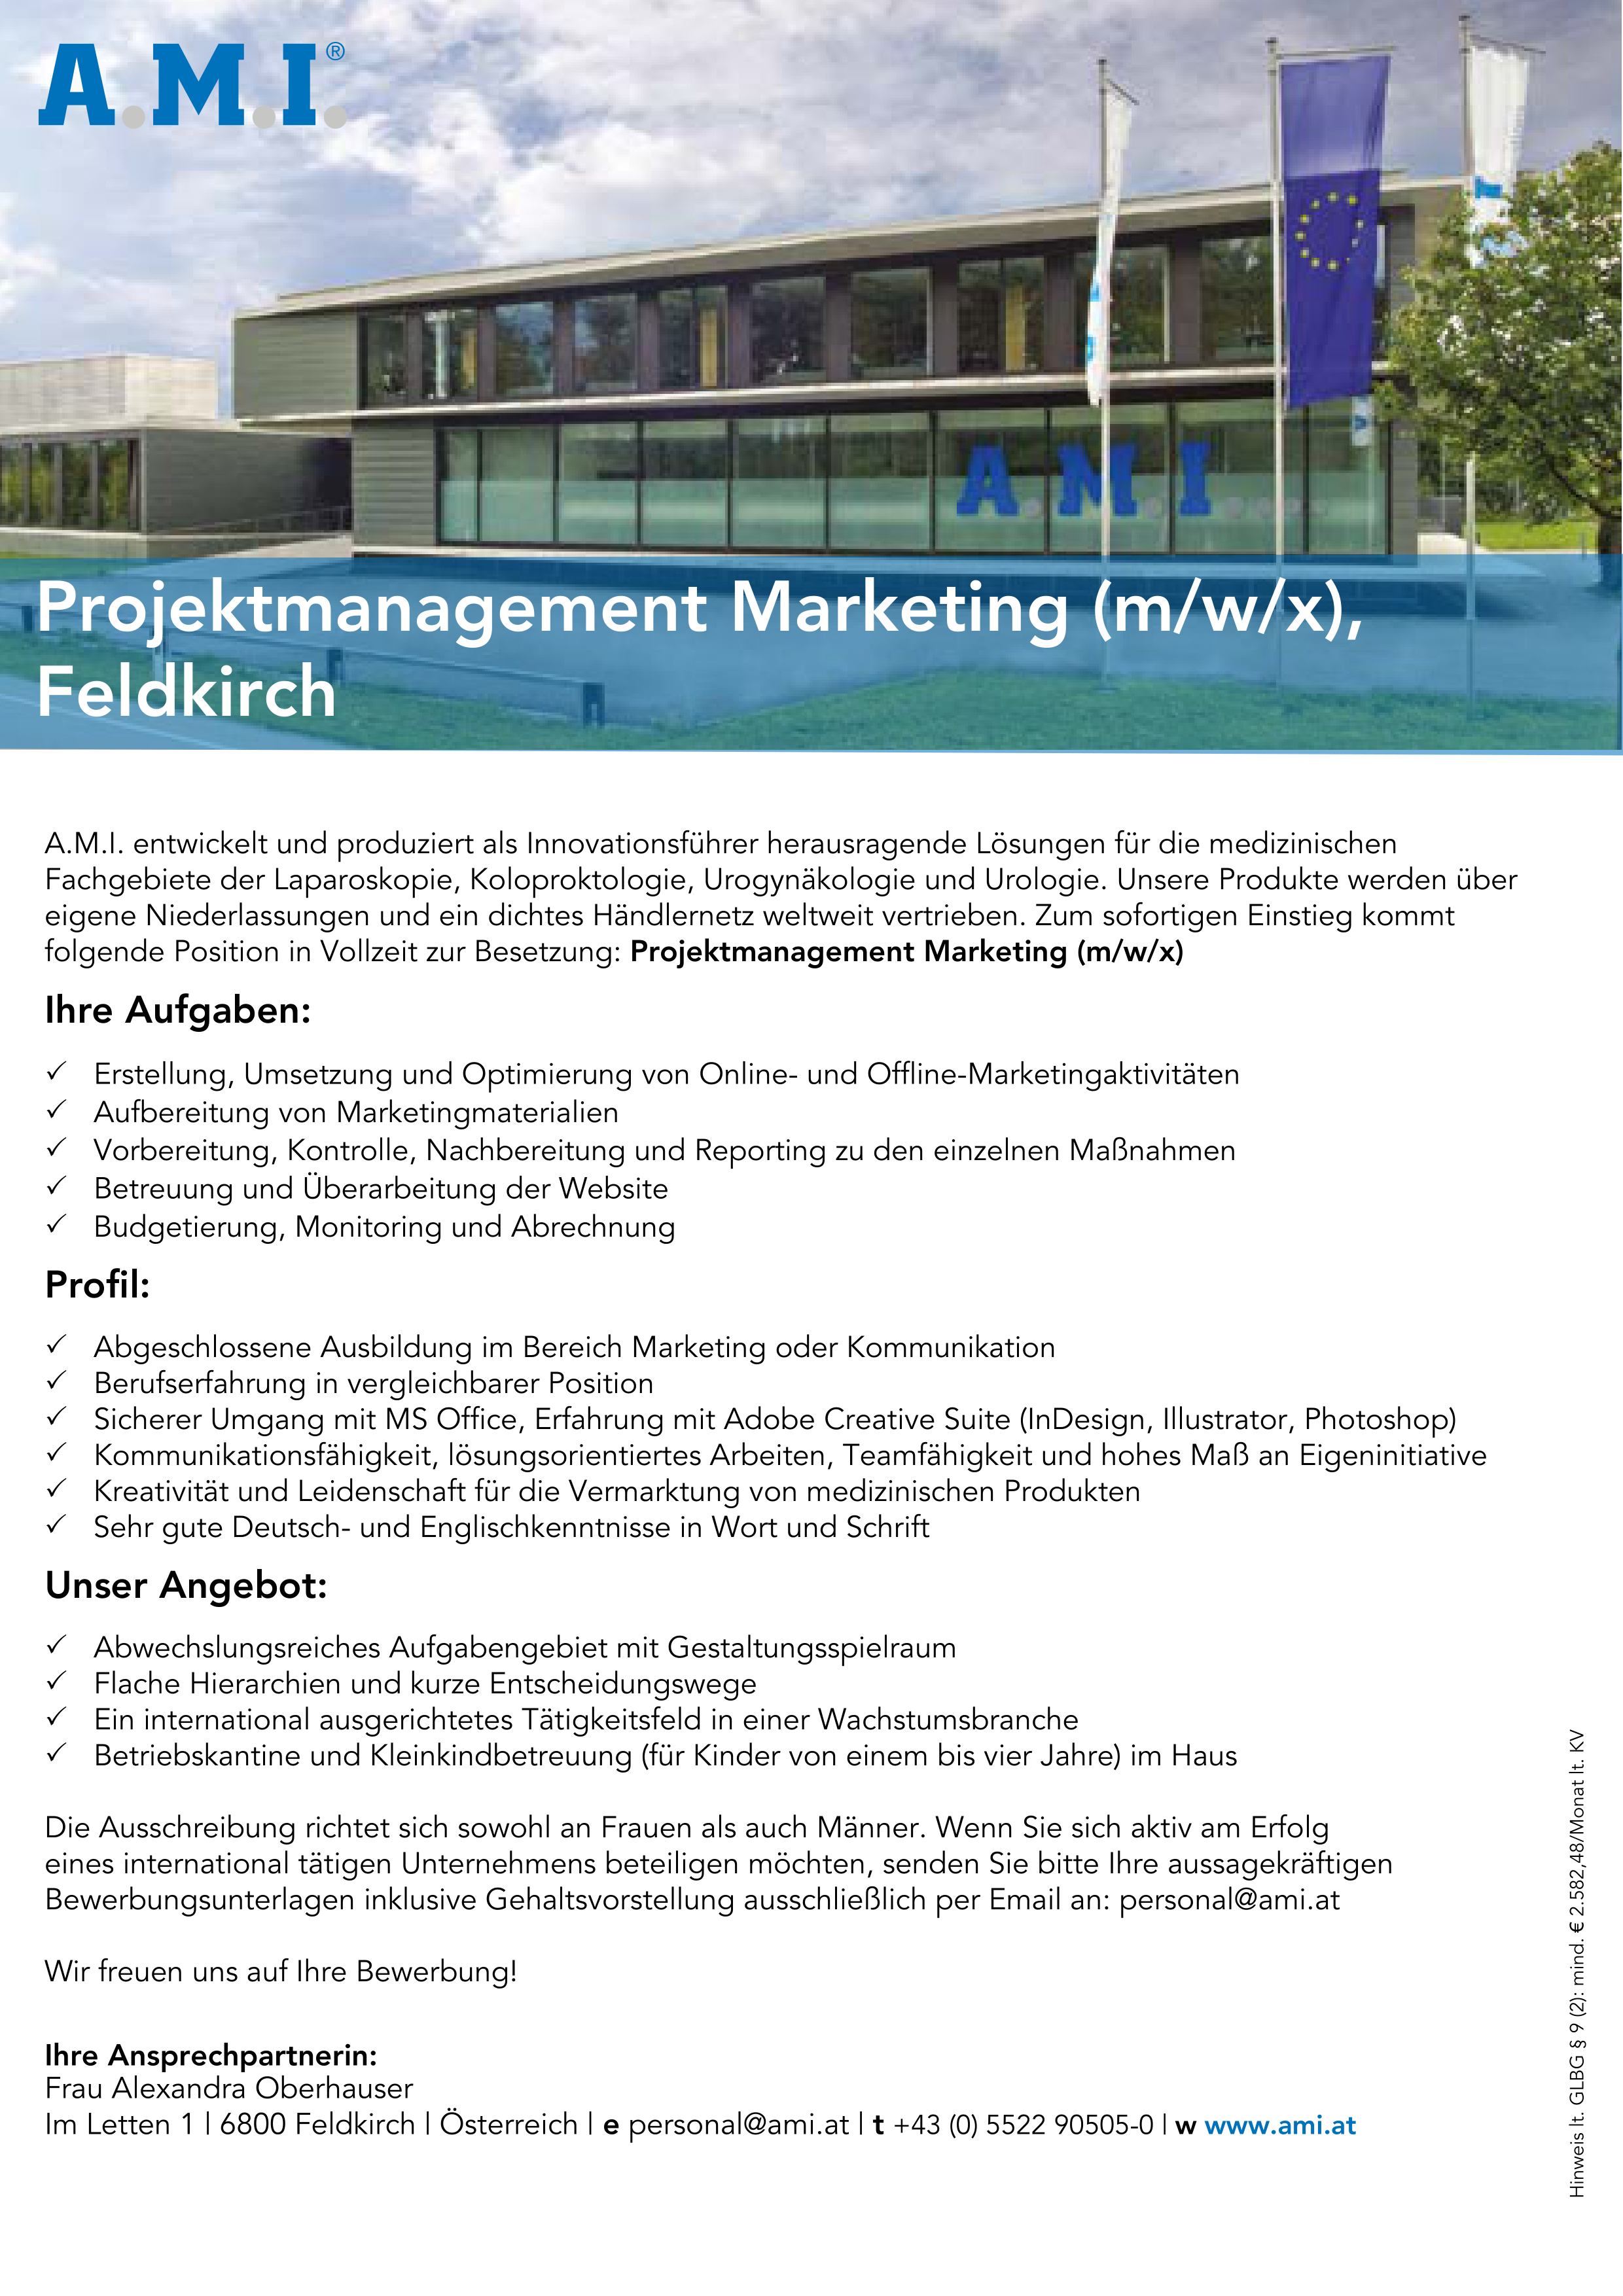 Projektmanagement Marketing (m/w/x), Feldkirch